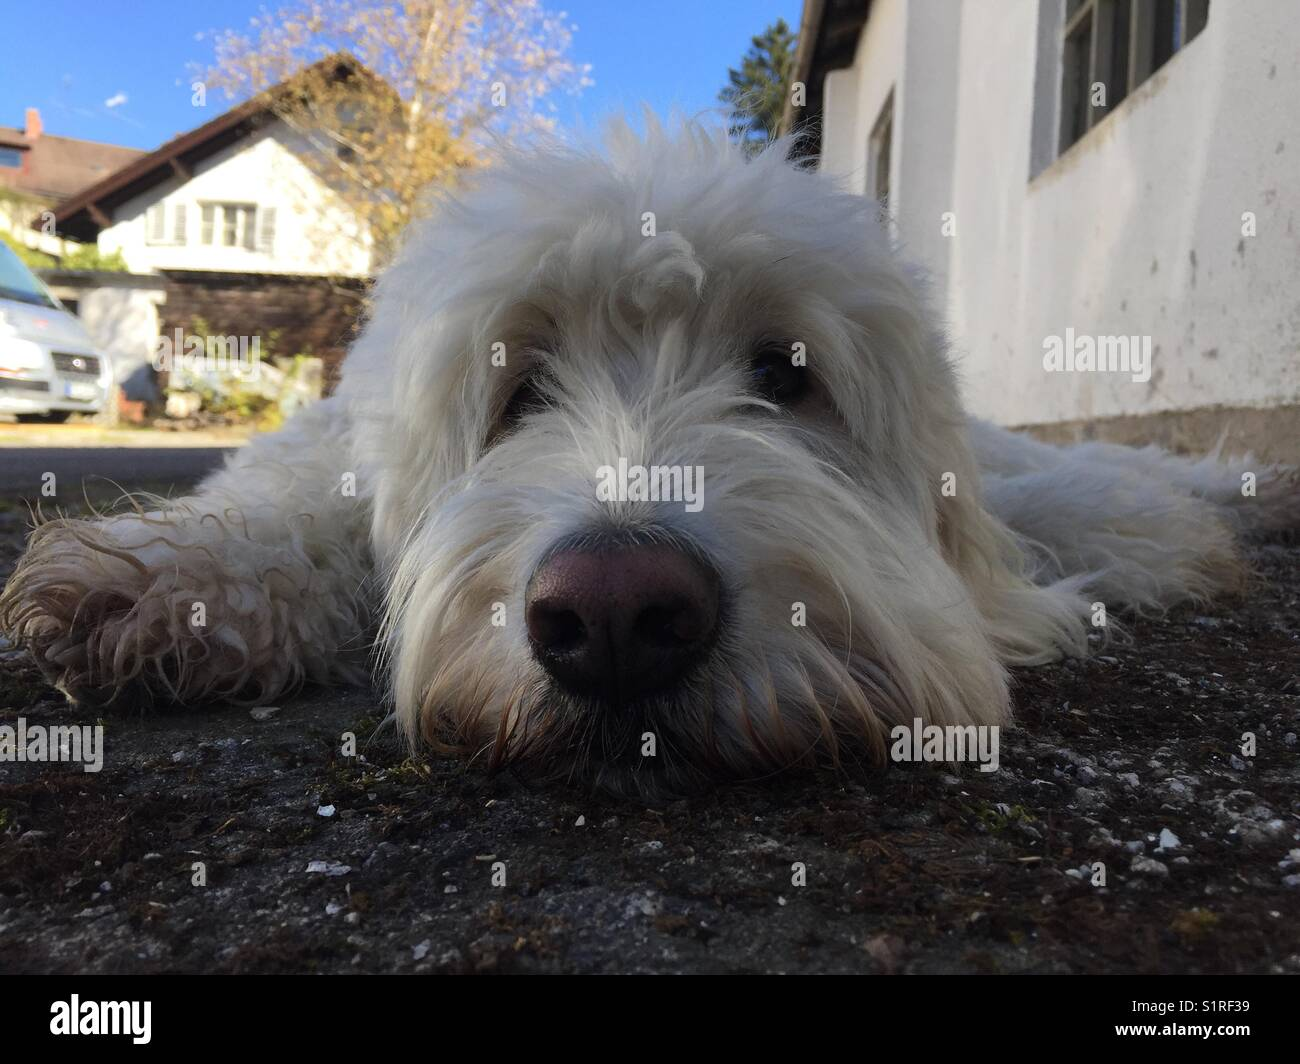 Closeup face of white dog goldendoodle with black nose on grey stony ground in front of blue sky in Starnberg Bavaria Stock Photo